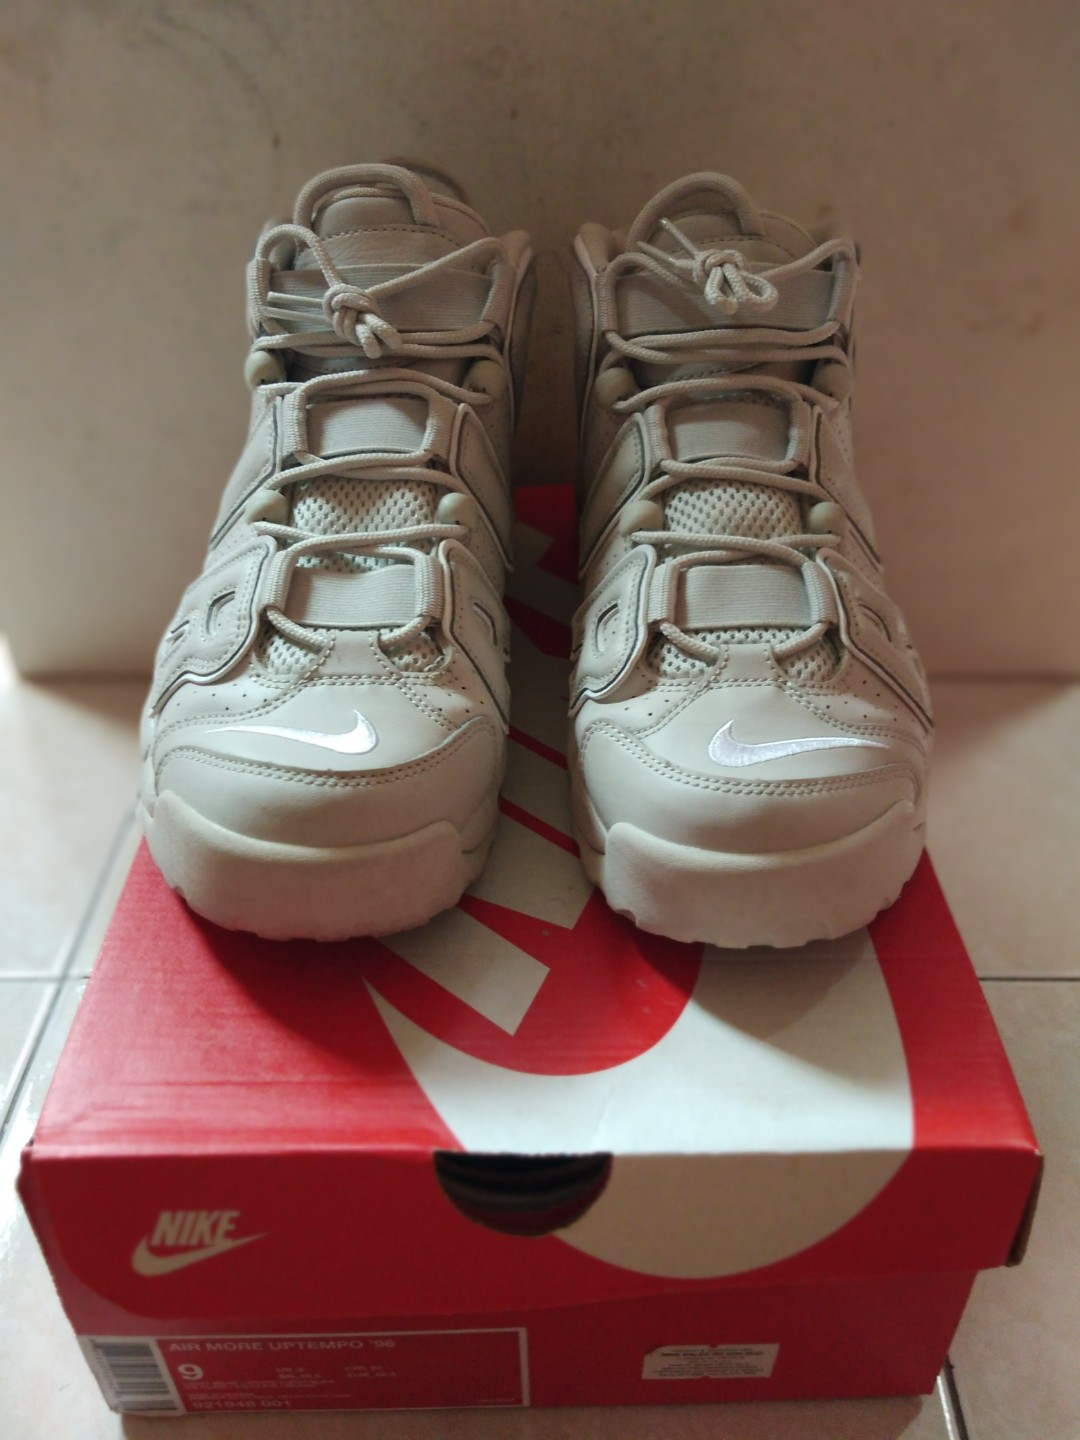 506e1f2f28af Nike Uptempo, Men's Fashion, Footwear, Sneakers on Carousell